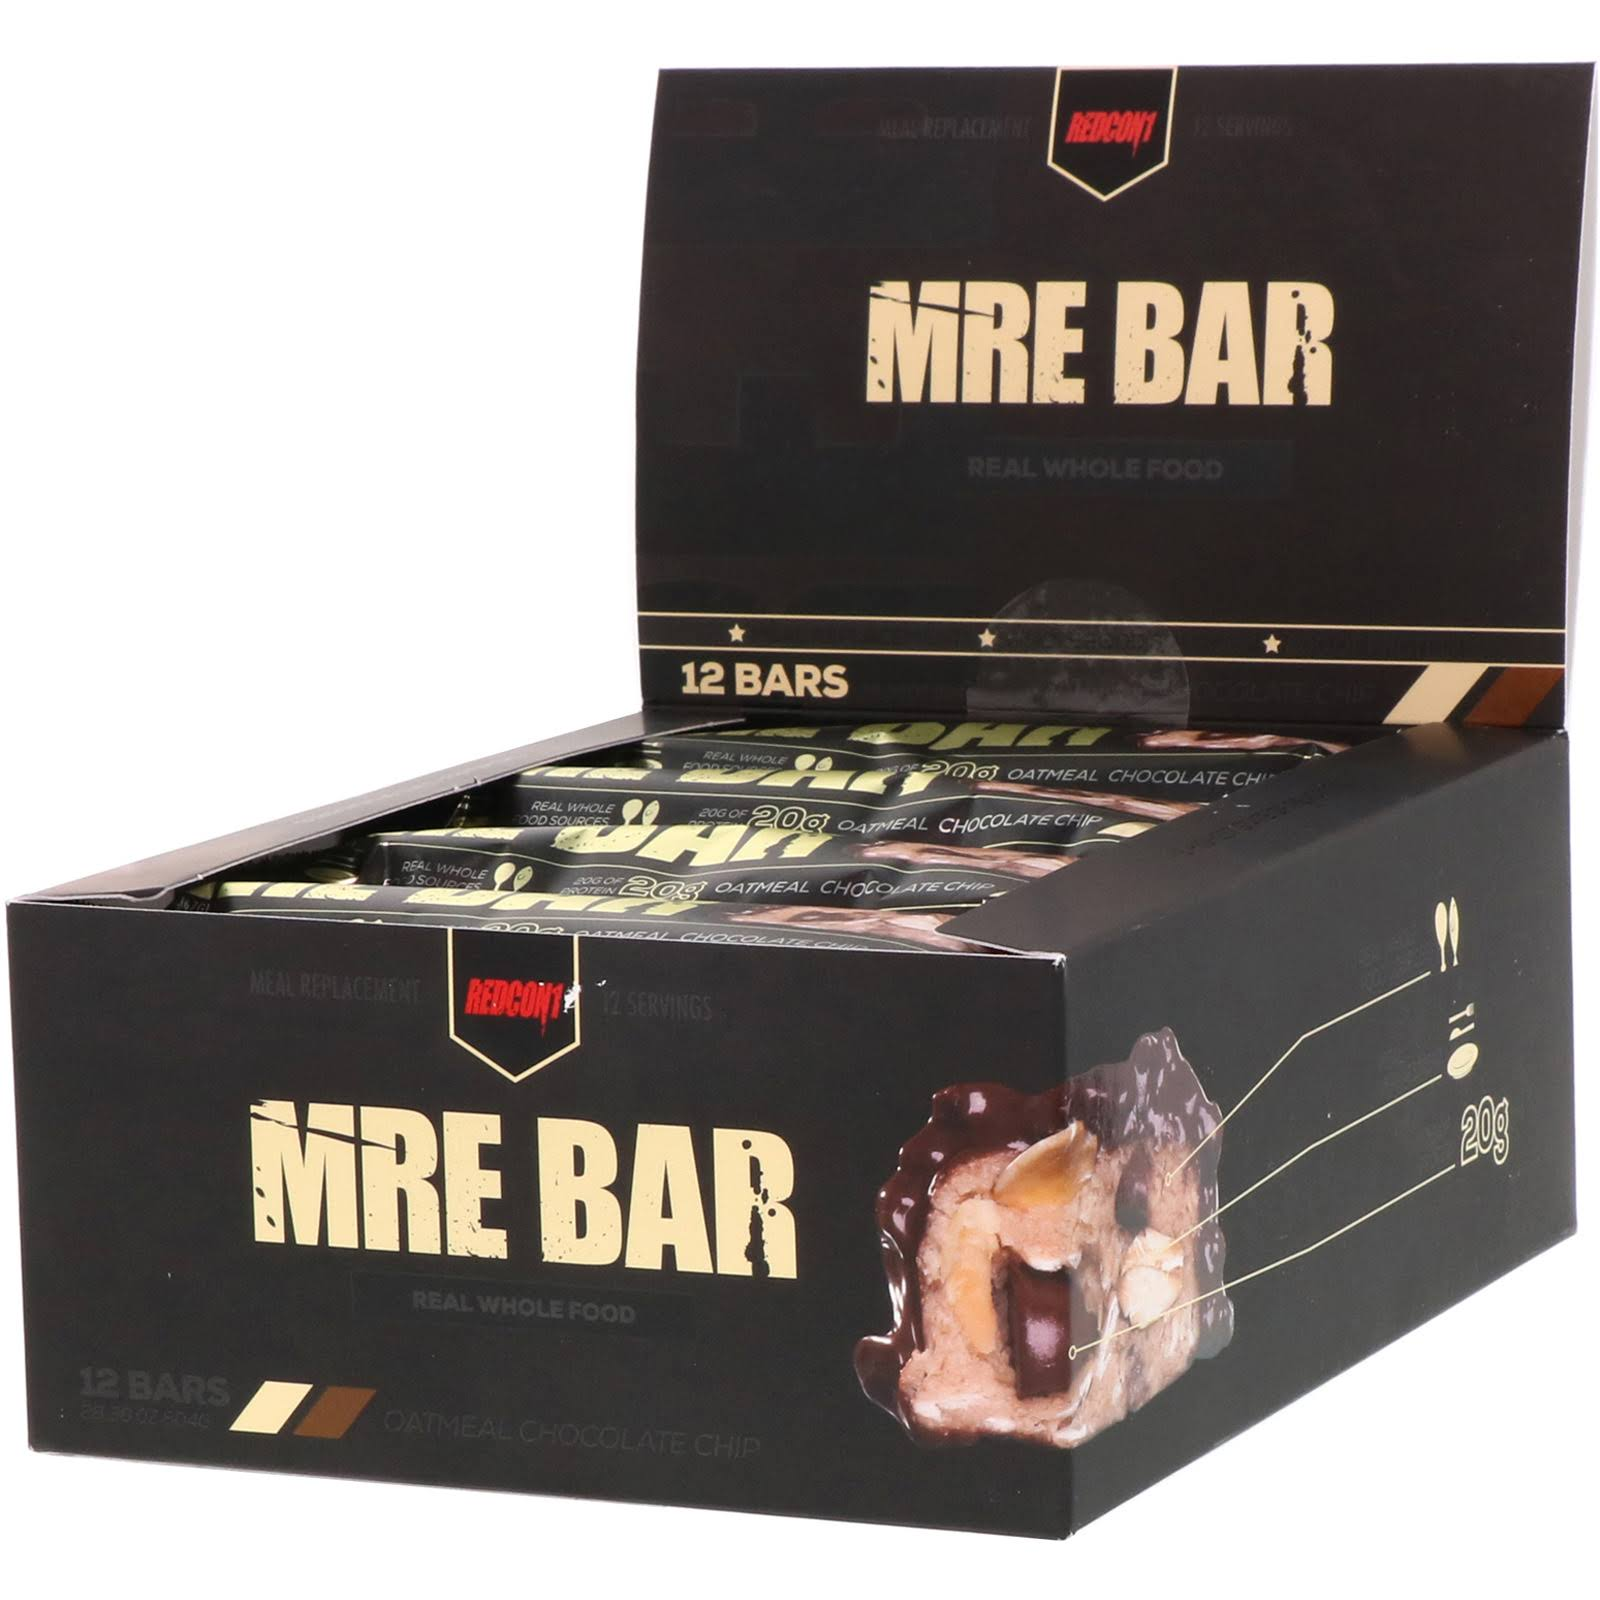 Redcon1 MRE Bar - 12 Bars Oatmeal Chocolate Chip